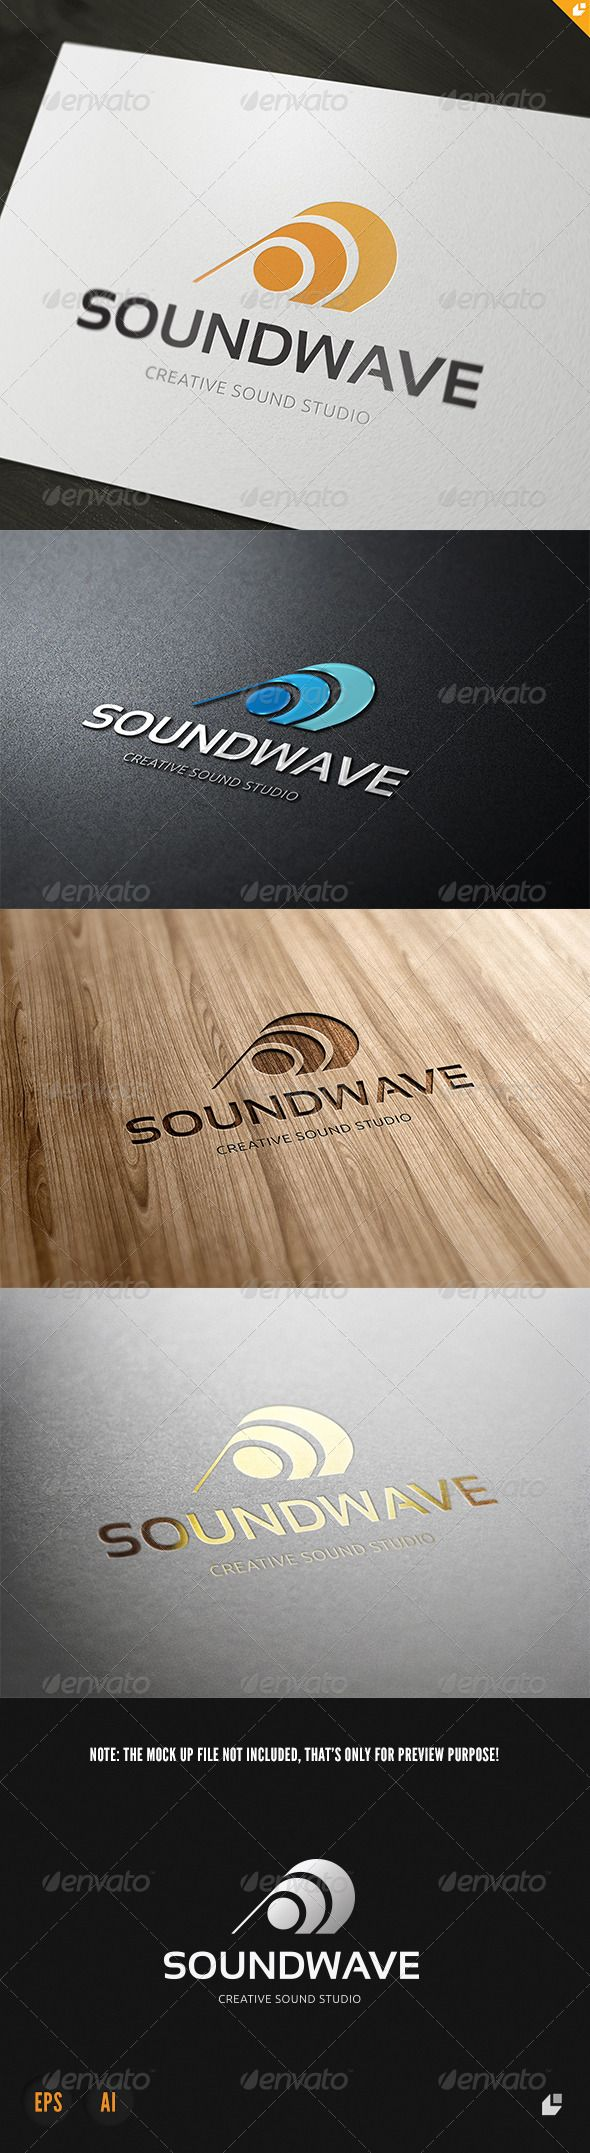 Sound Wave Logo #GraphicRiver Media Play- Logo Template This logo design for creative company. Sound Wave Features AI and EPS 300PPI CMYK 100% Scalable Vector Files Easy to edit color / text Ready to print Used Free Font (Link Included Main Download) My Logo Templates Designs If you buy and like this logo, please remember to rate it. Thanks! Created: 4February13 GraphicsFilesIncluded: VectorEPS